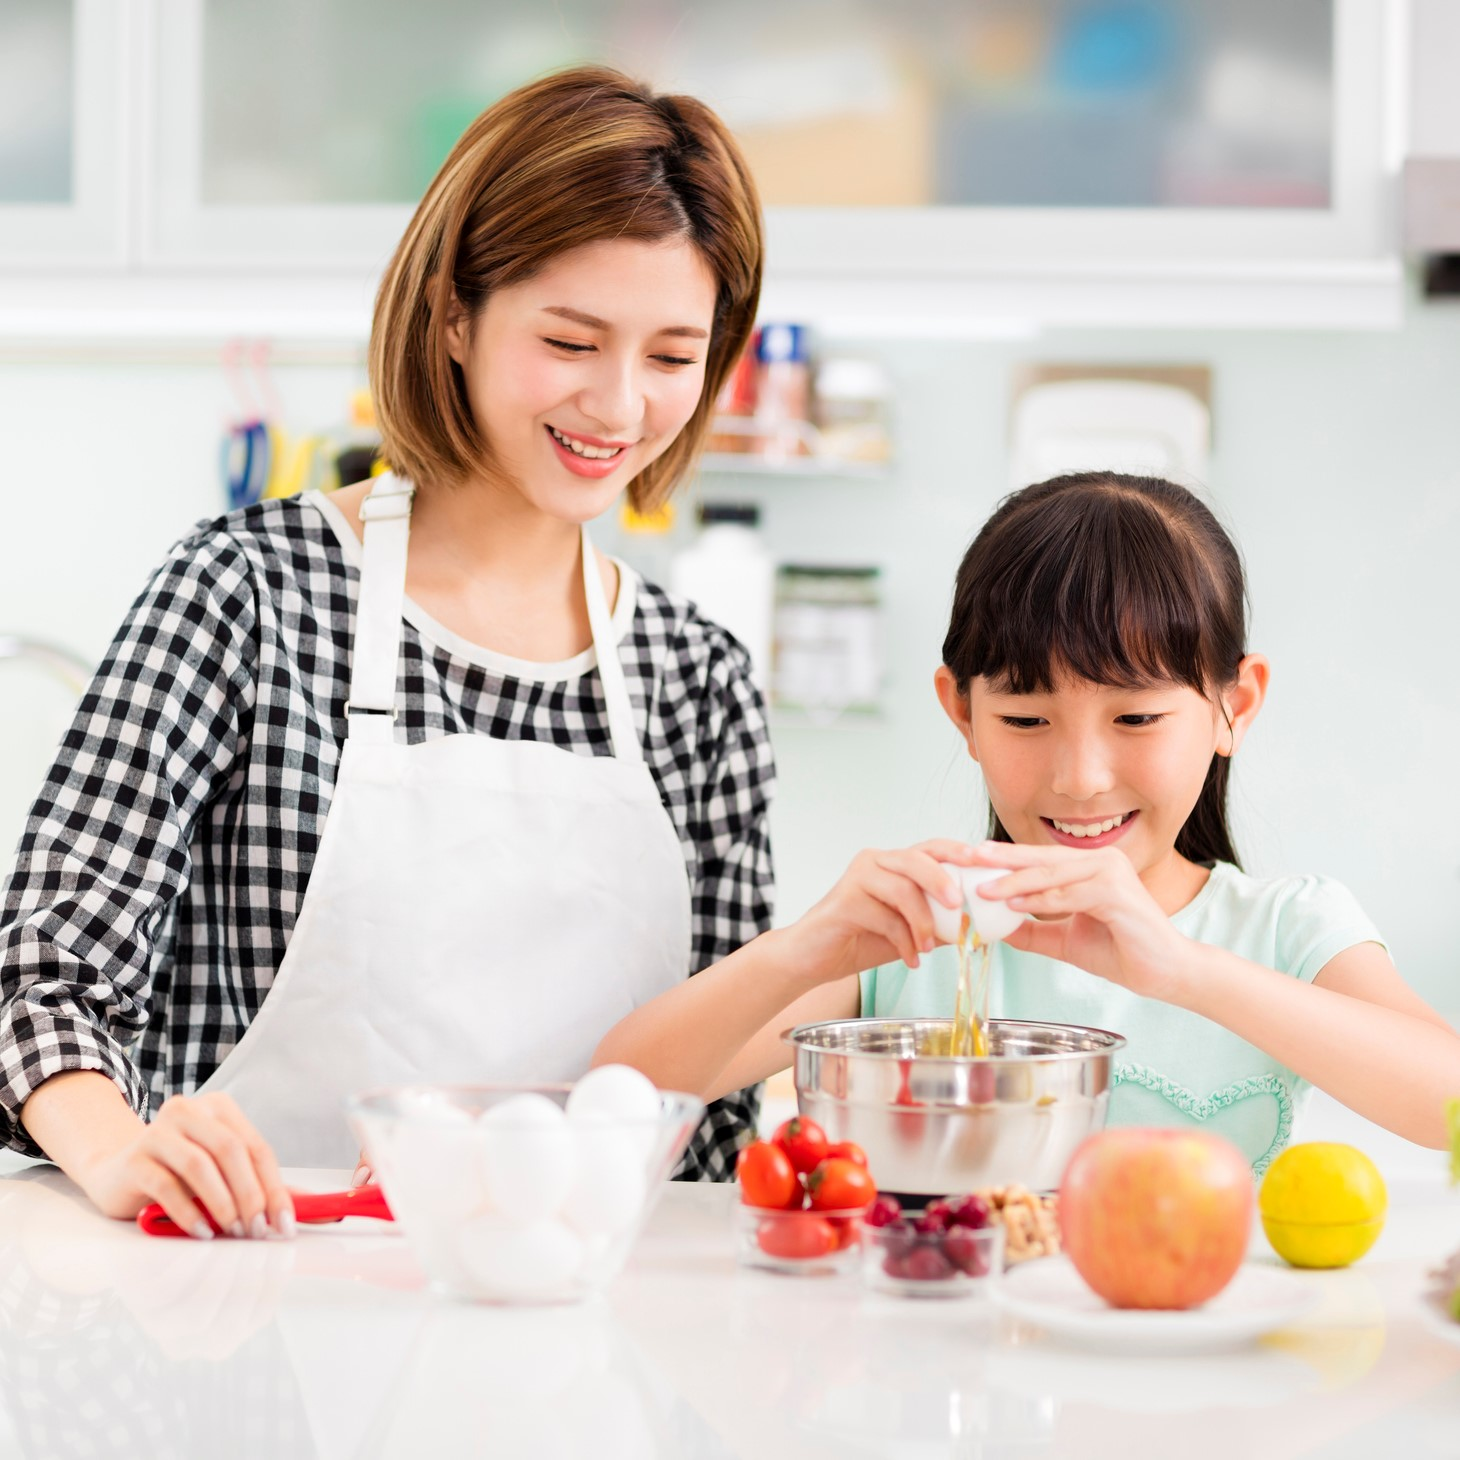 Mother and child in kitchen preparing cookies